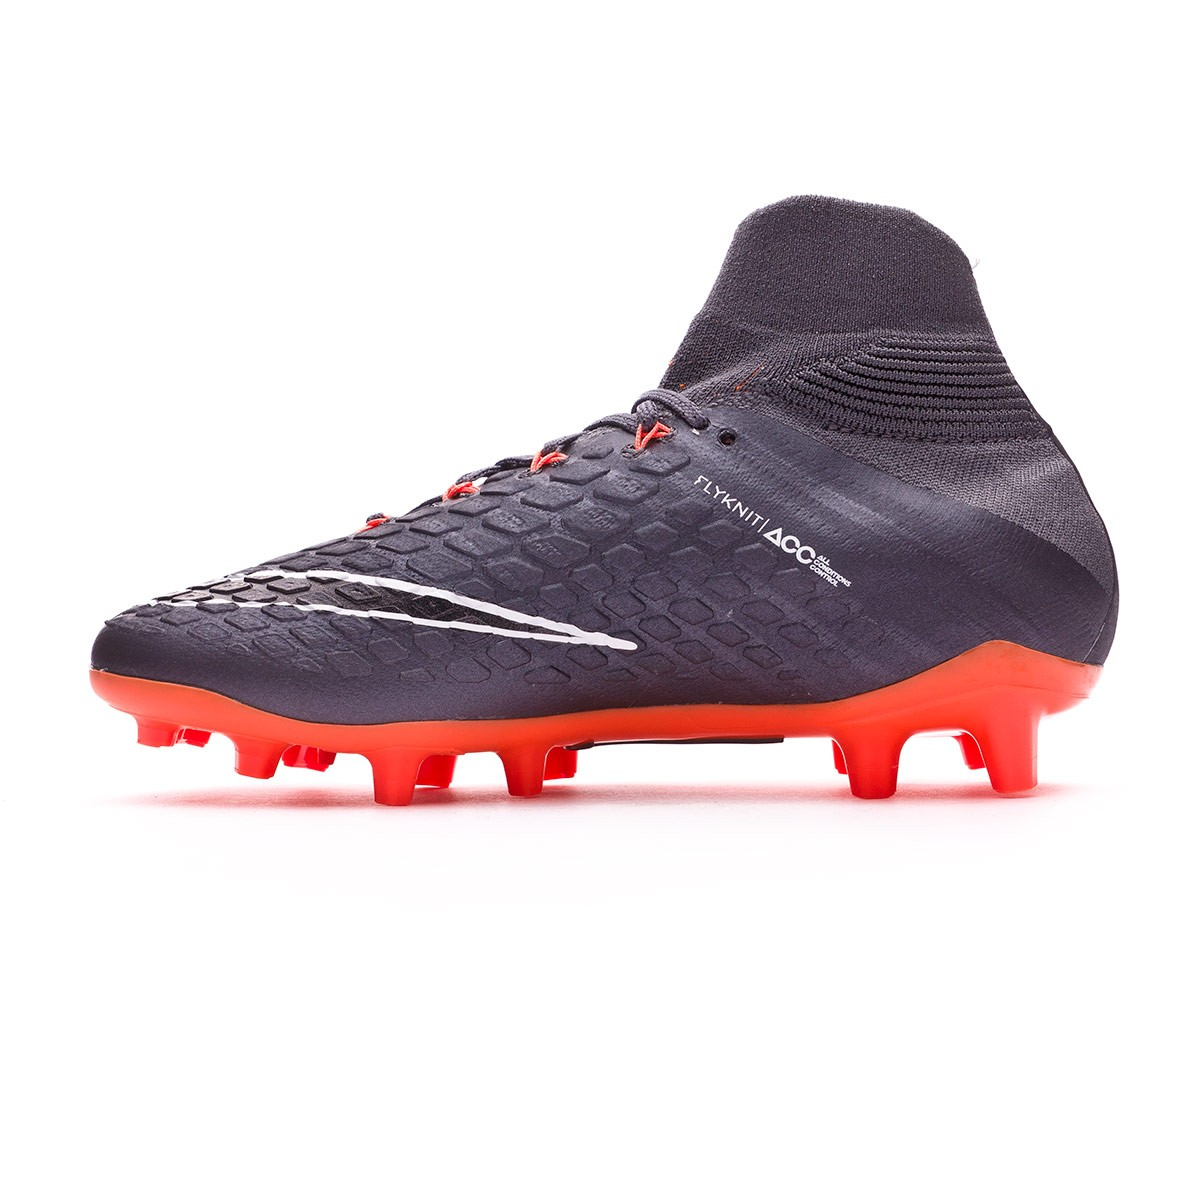 1a5638cfc Football Boots Nike Kids Hypervenom Phantom III Elite DF FG Dark grey-Total  orange-White - Football store Fútbol Emotion